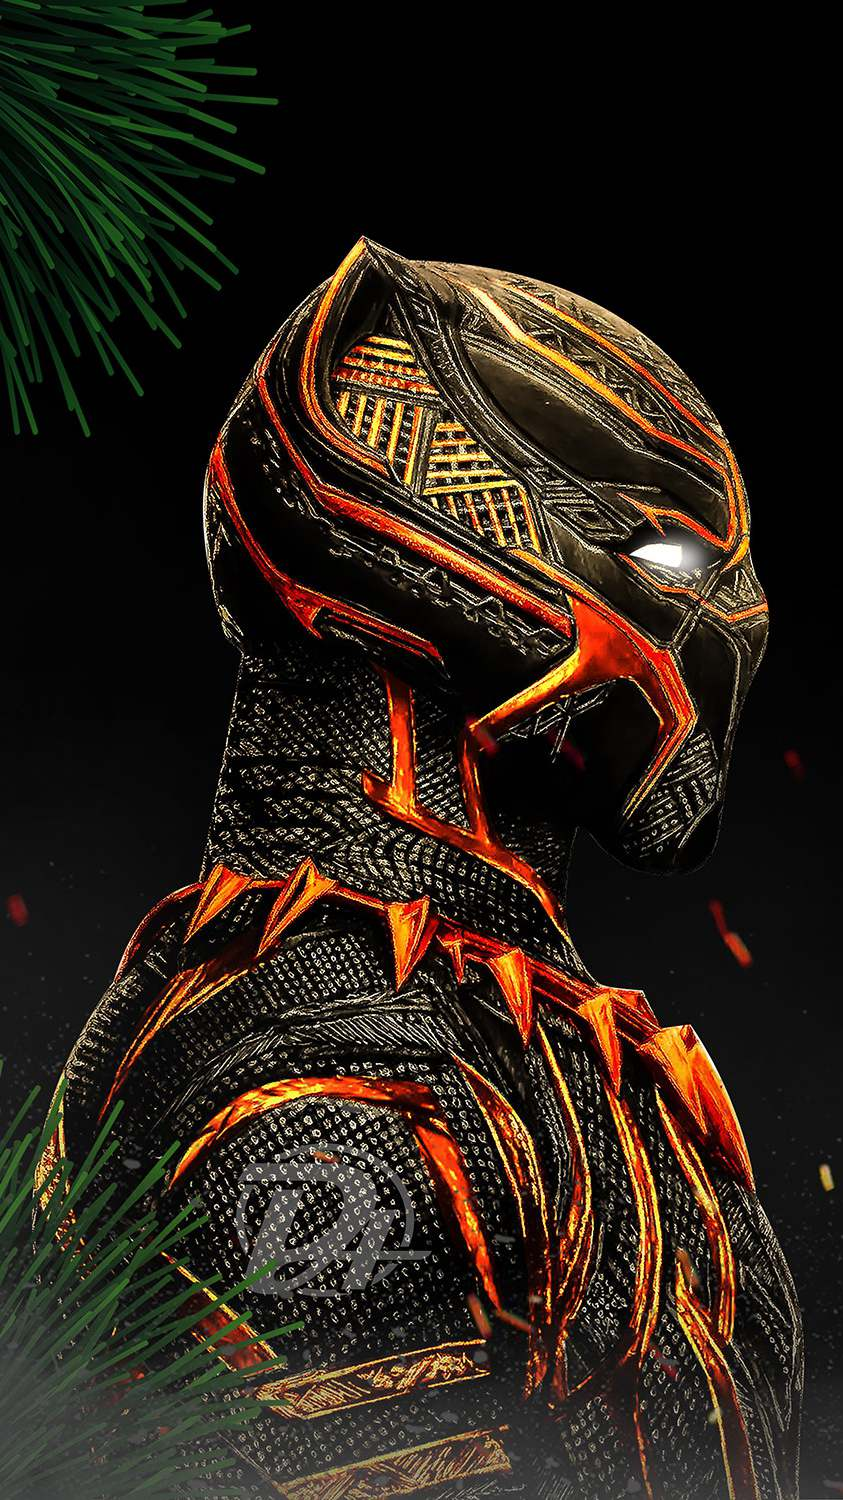 Artistic Quotes Wallpaper Black Panther Red Suit Iphone Wallpaper Iphone Wallpapers